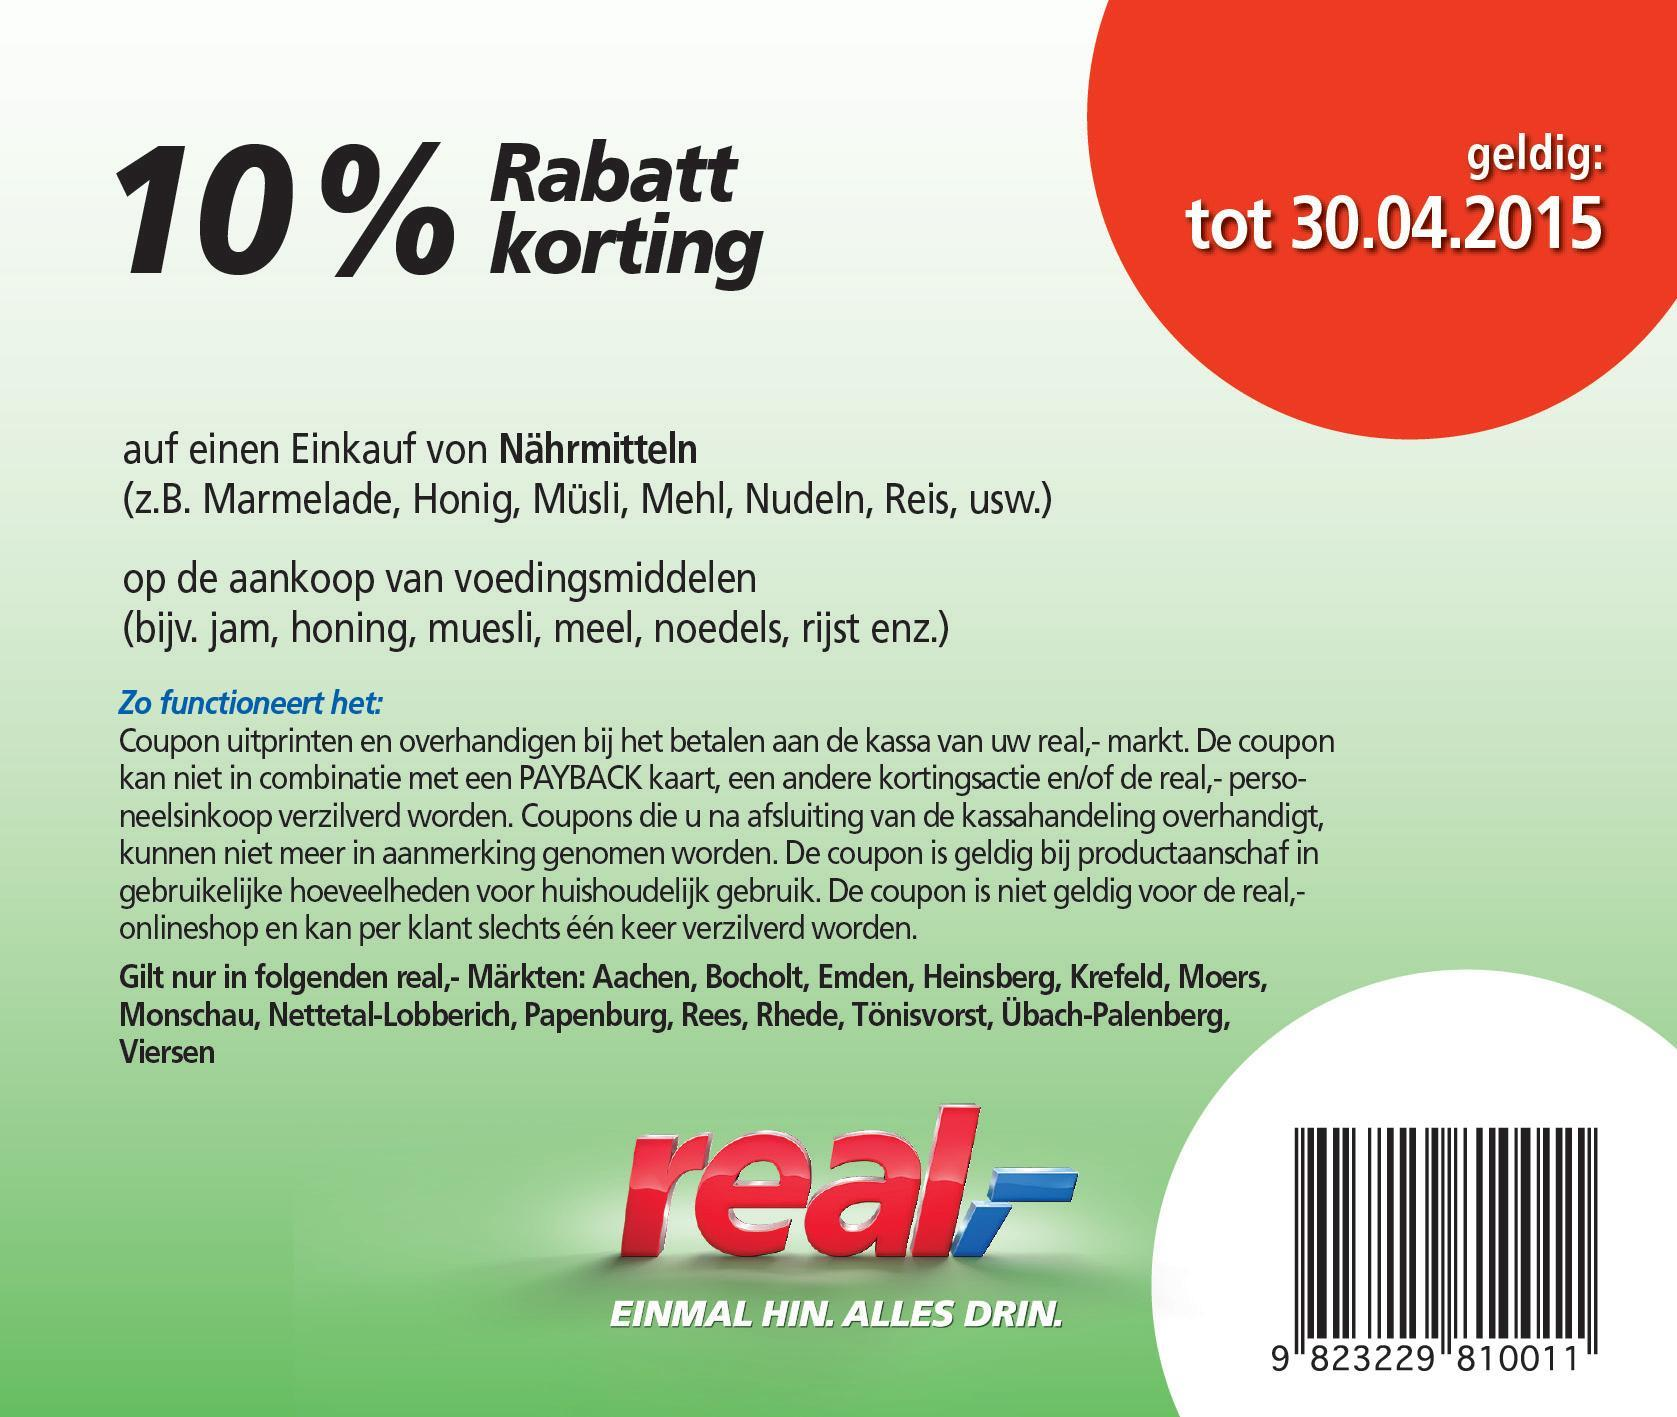 coupons_apr_2015_nl-pk0boc.jpg